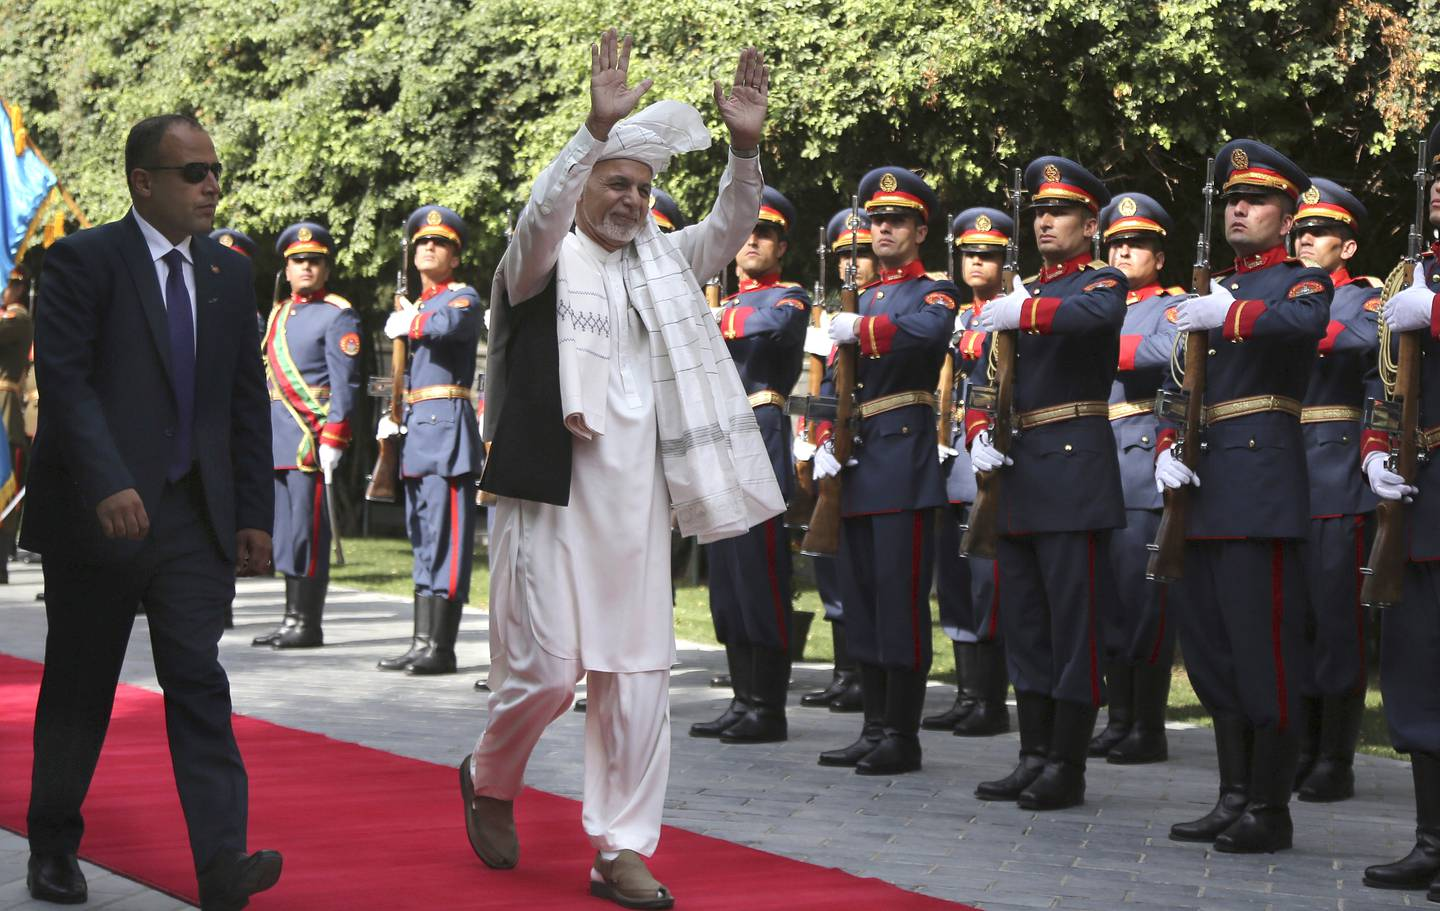 Afghanistan's President Ashraf Ghani, center, greets as he arrives to offer Eid al-Adha prayers at the presidential palace in Kabul, Afghanistan, Sunday, Aug. 11, 2019.